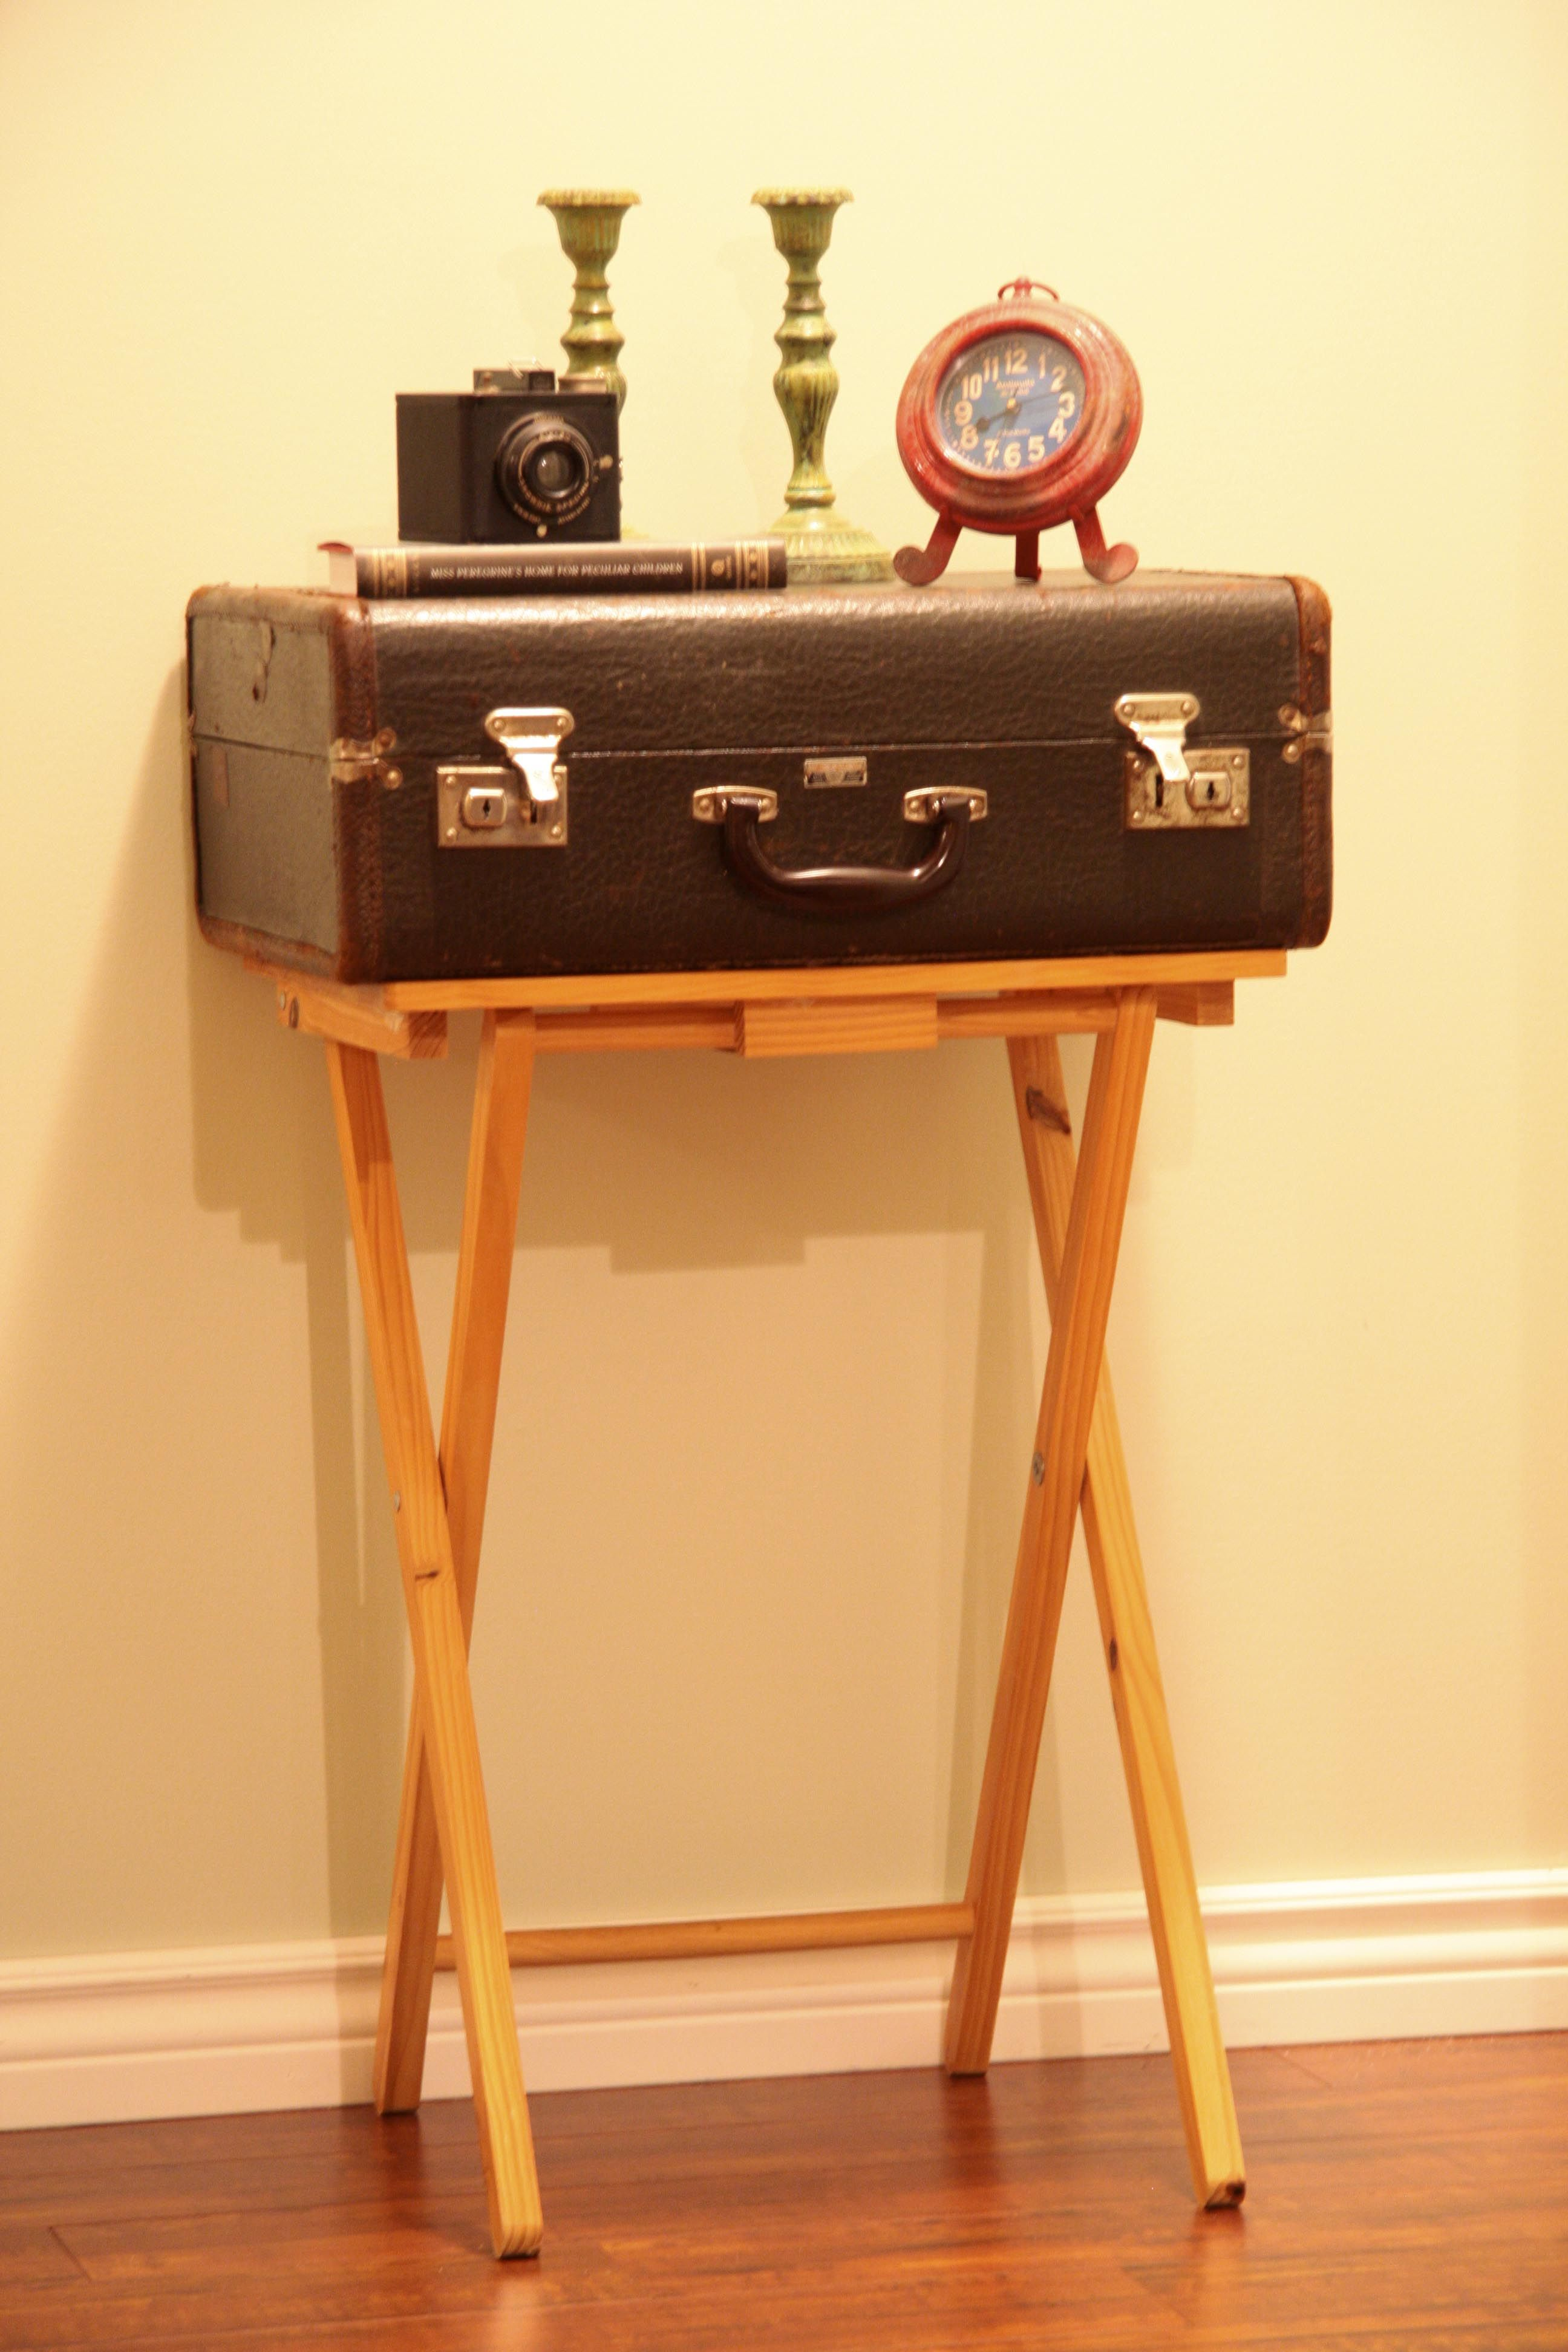 A Vintage Suitcase Made By Christie Baggage Of Amherst, Nova